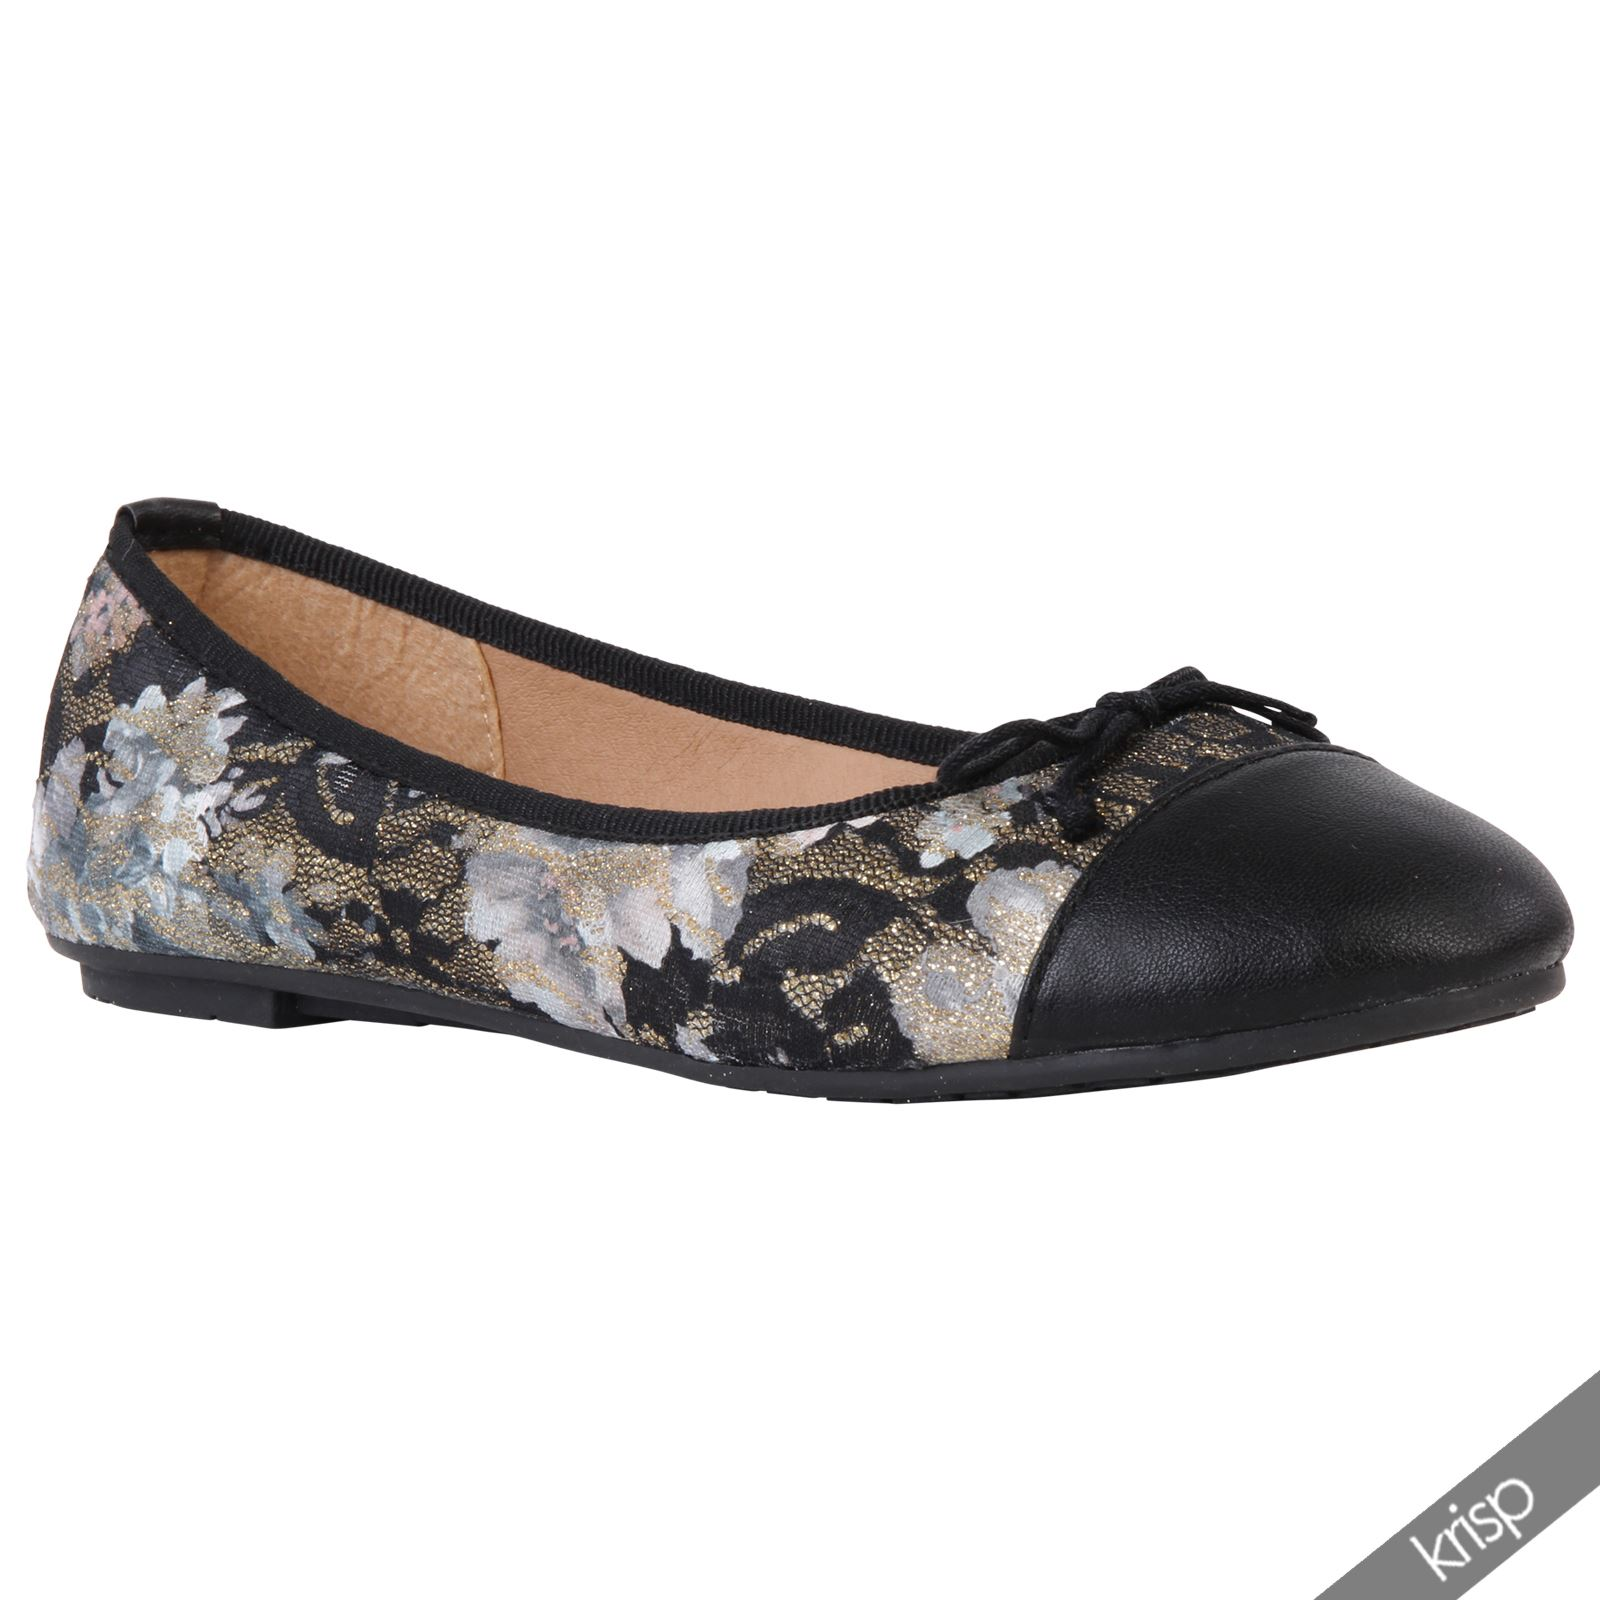 Girls' Flats Shoes Payless has the flats for girls that you're looking for with the best prices on kids' shoes everyday. Sort By: Best Matches Price Low To High .